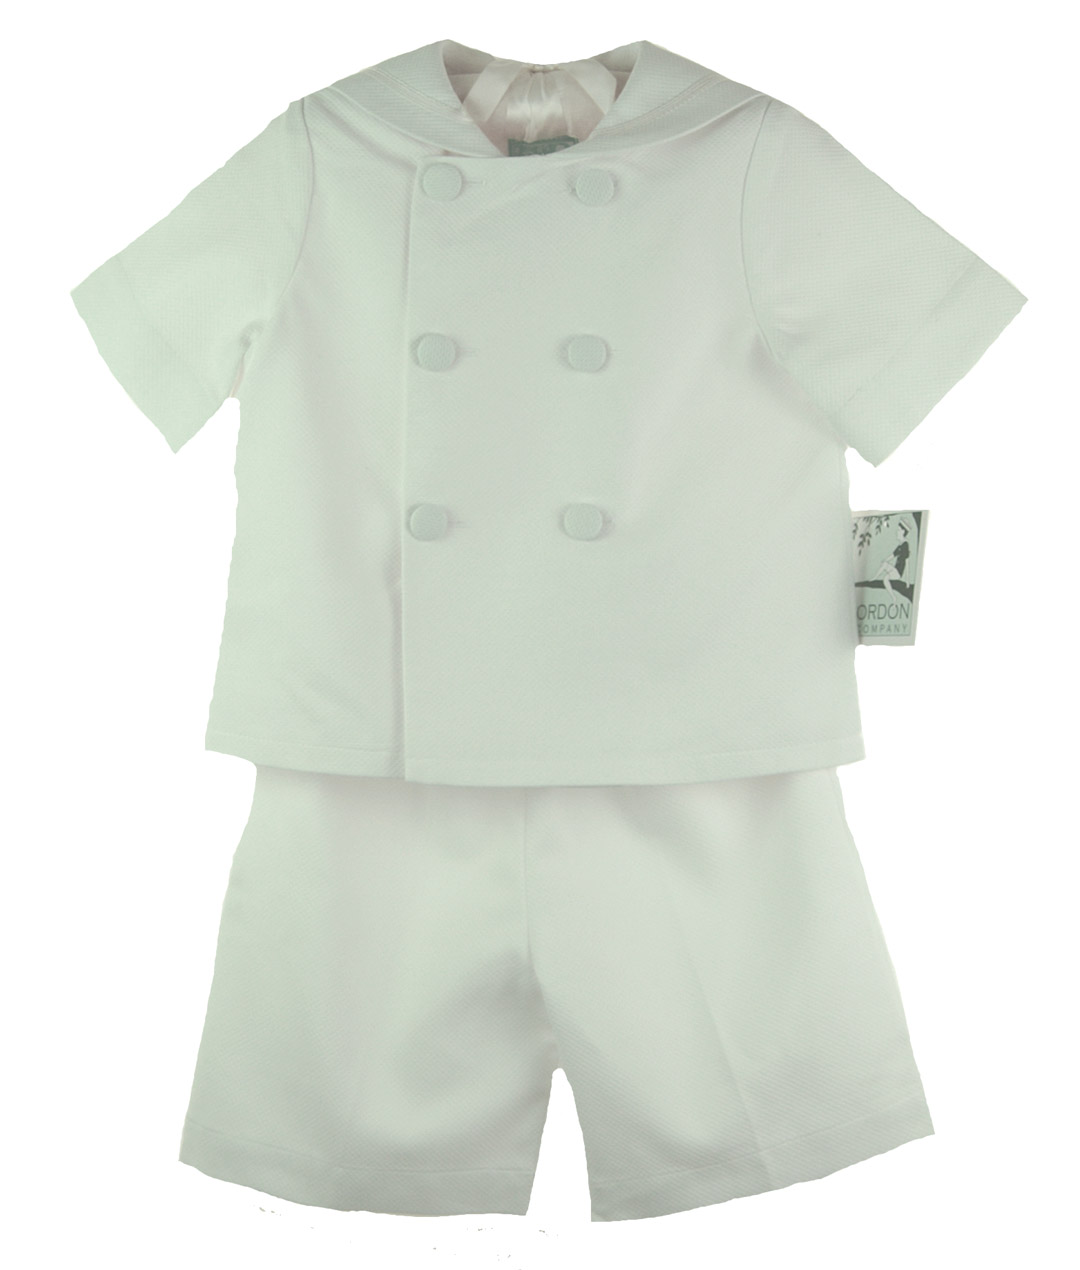 Gordon & Co Sailor Suit,Gordon And Company Sailor Outfit